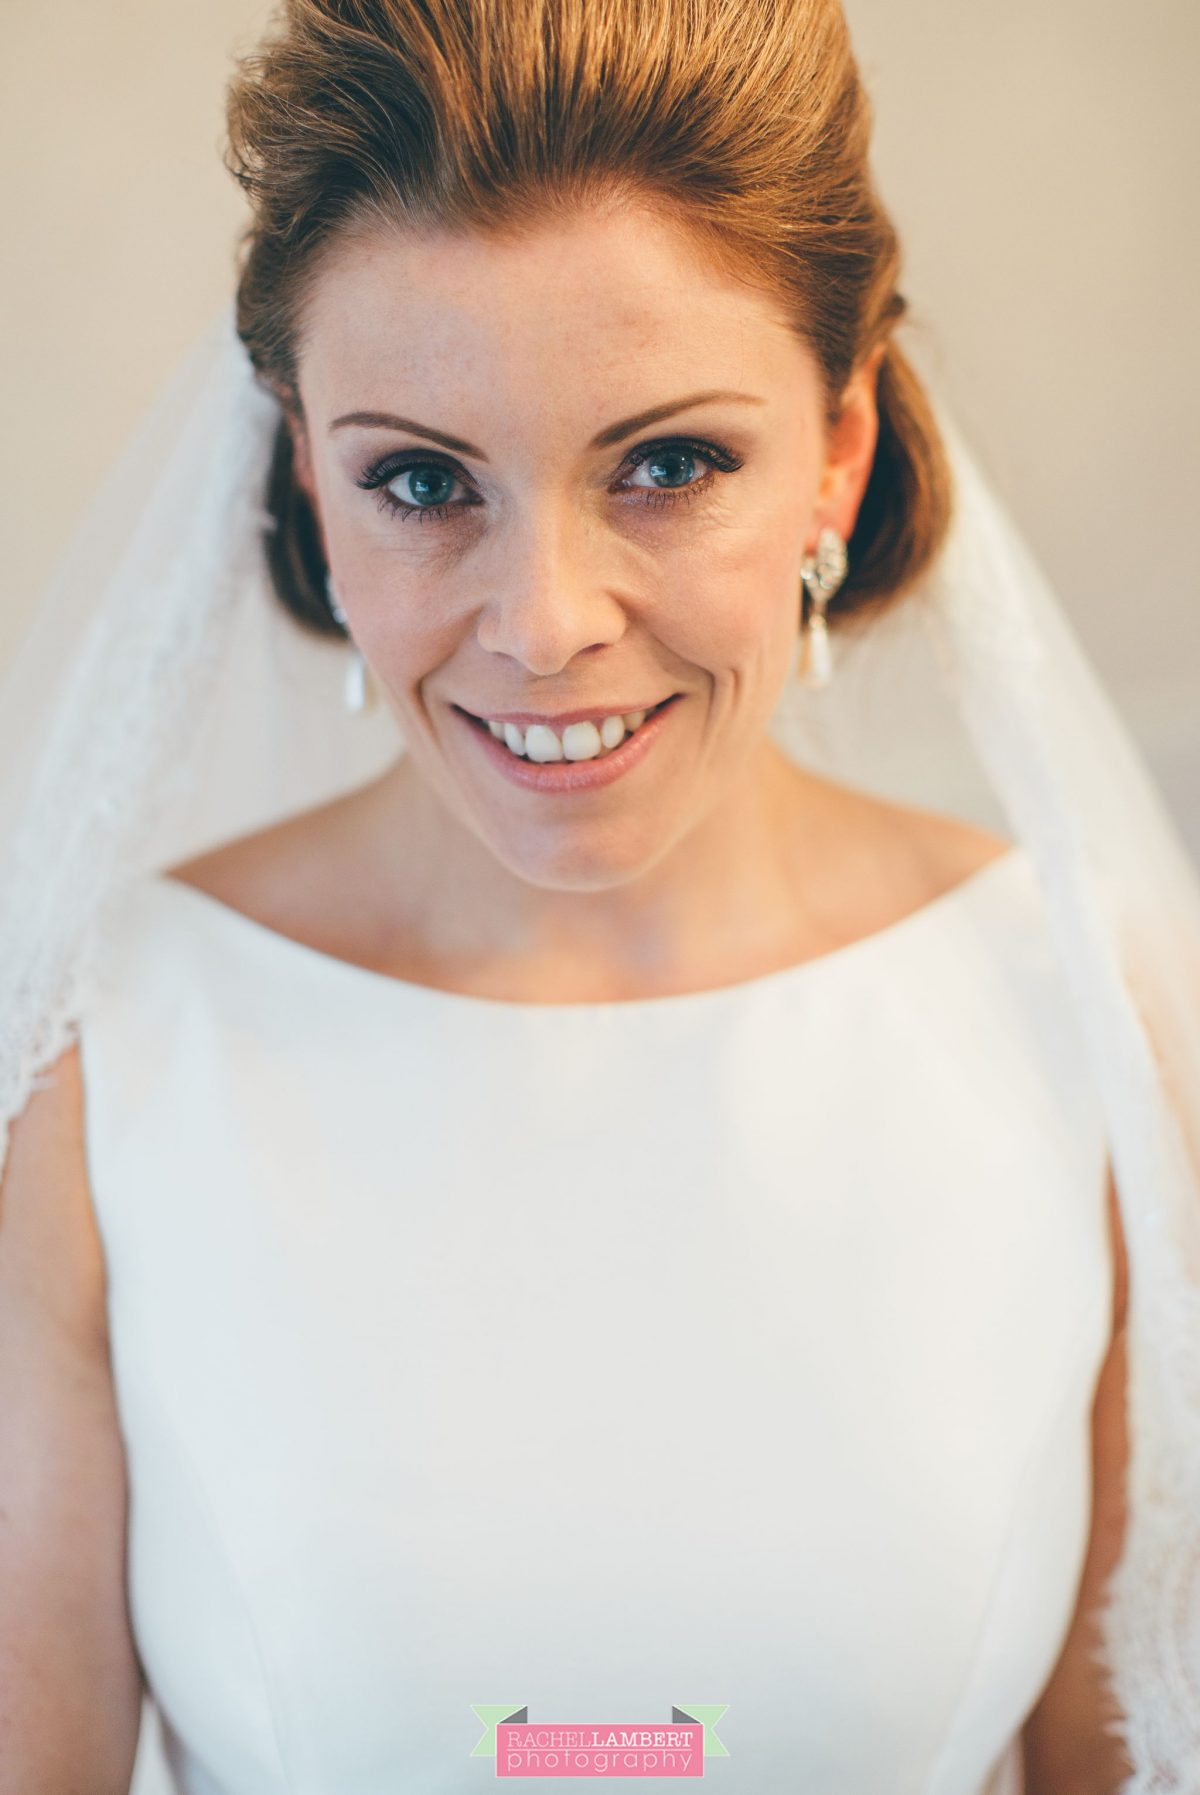 welsh_wedding_photographer_rachel_lambert_photography_decourceys_manor_cardiff_ceri_chris_ 12